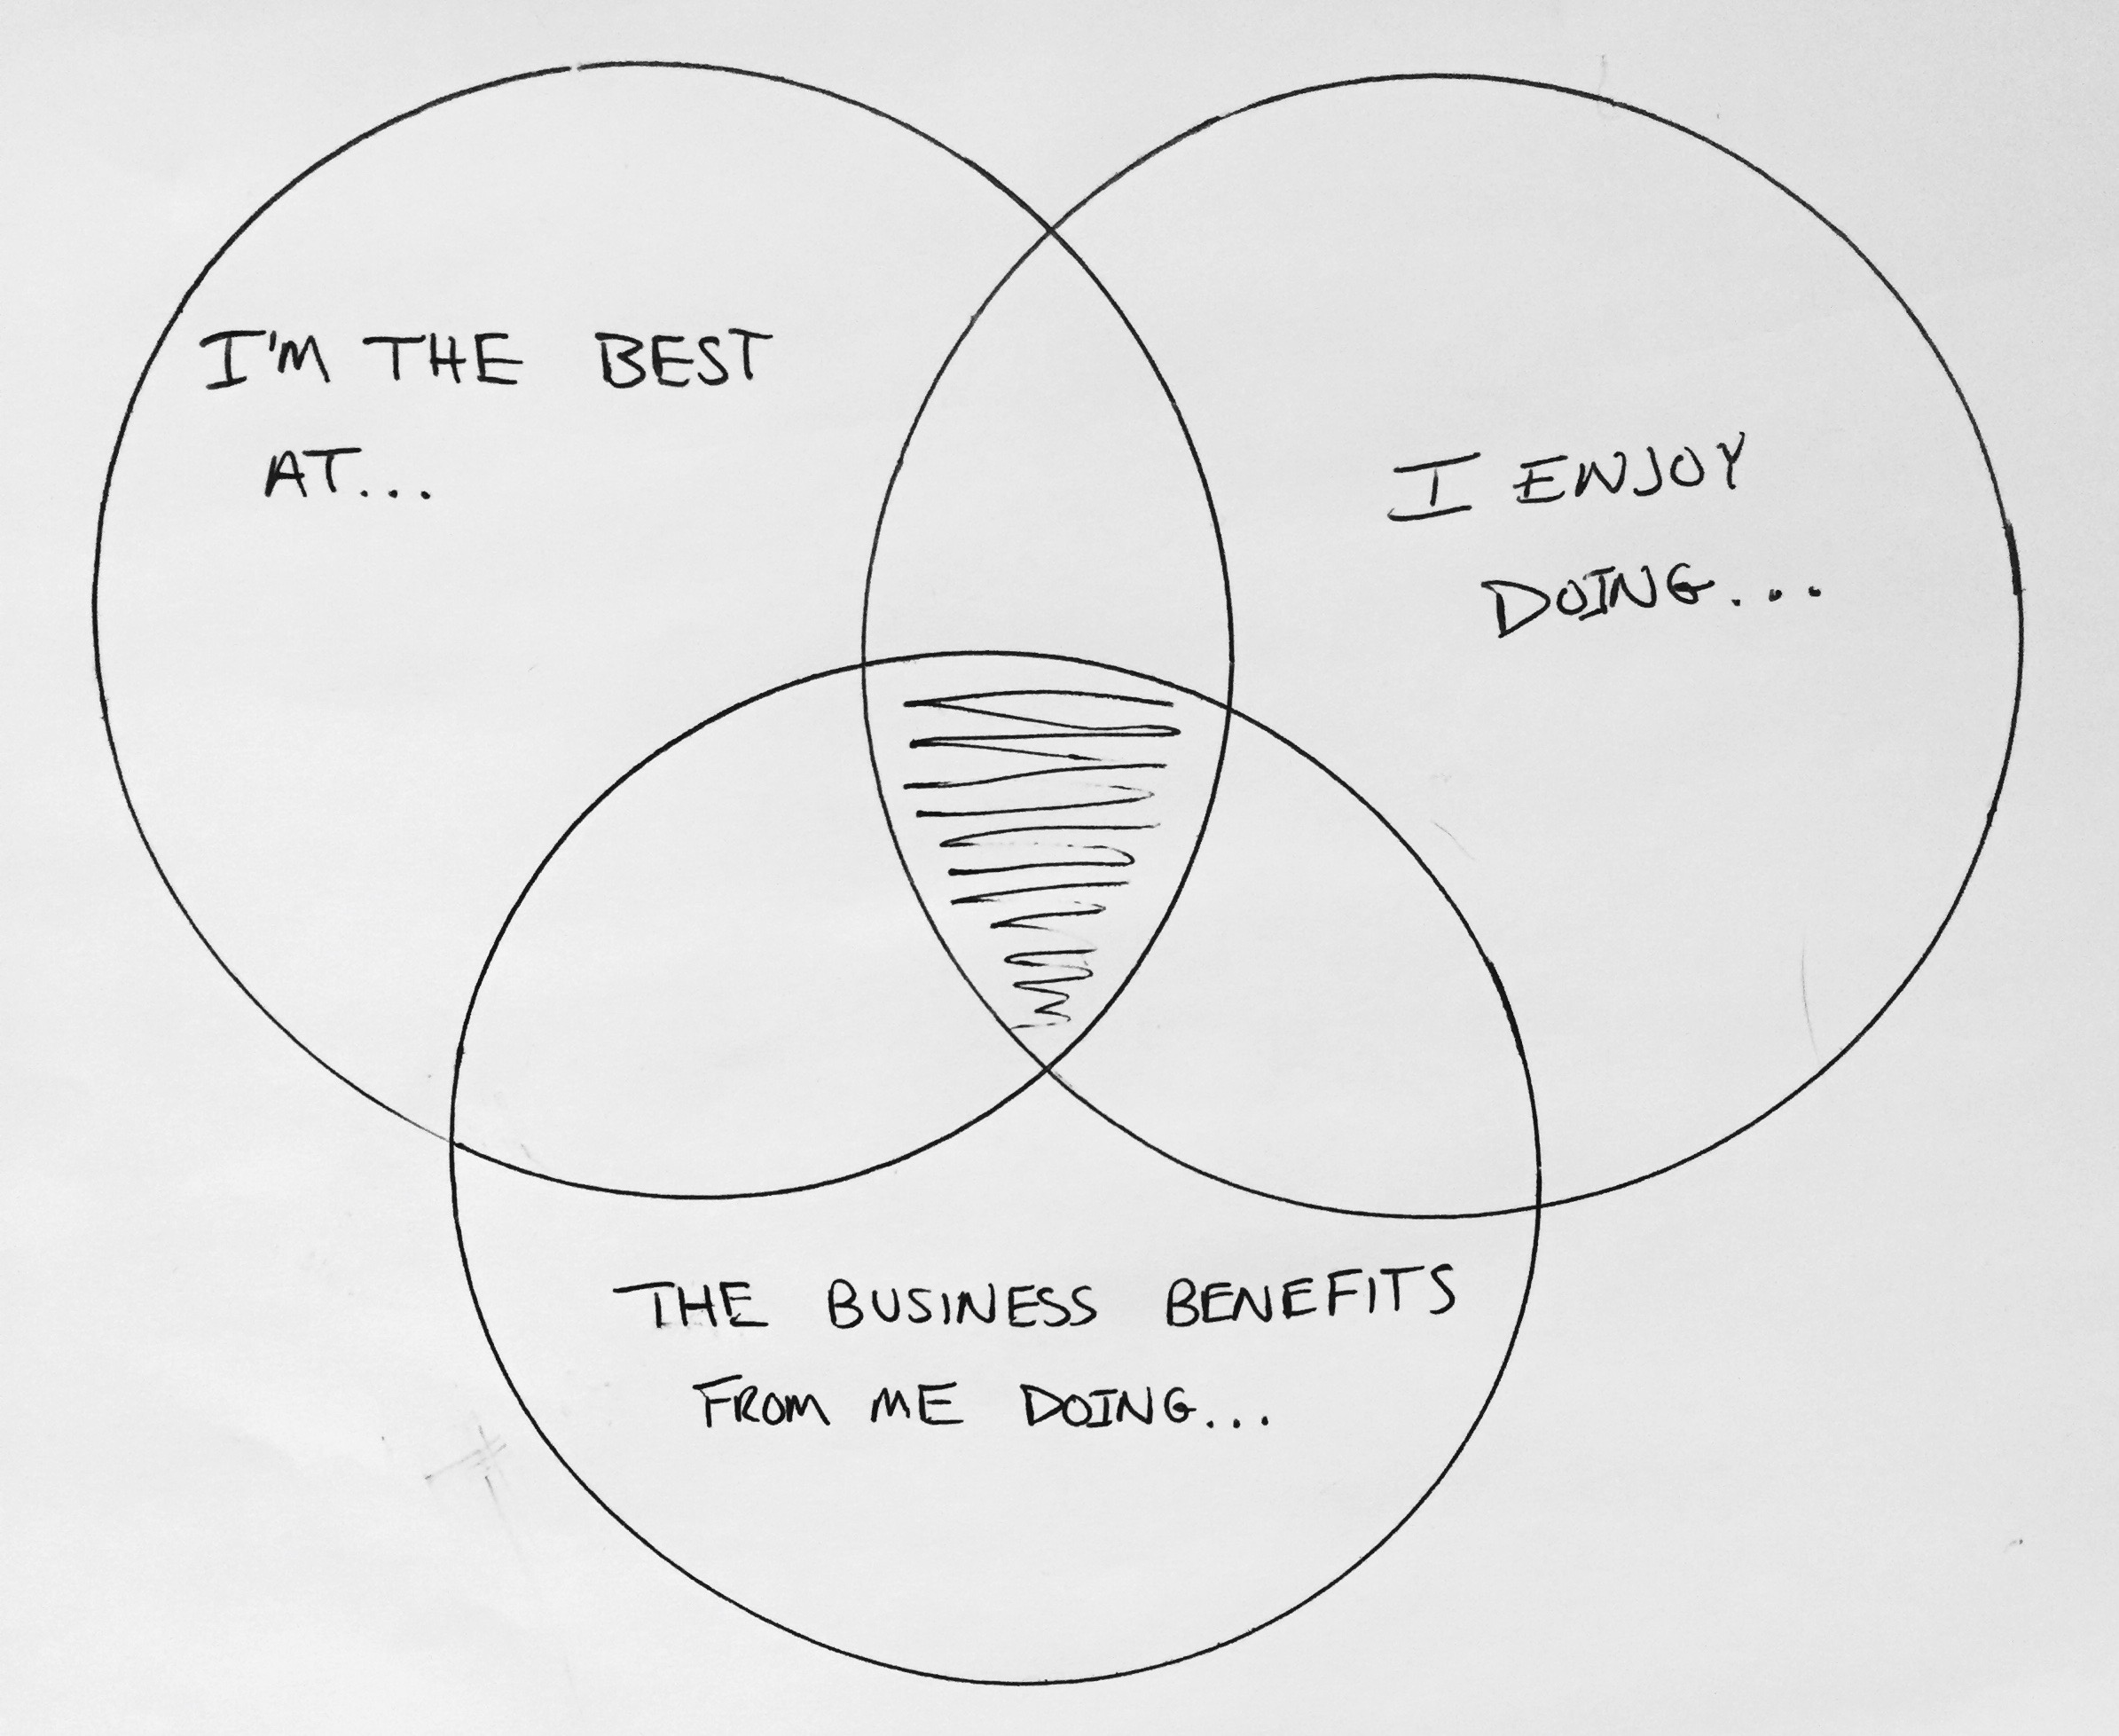 A venn diagram for getting the right things done